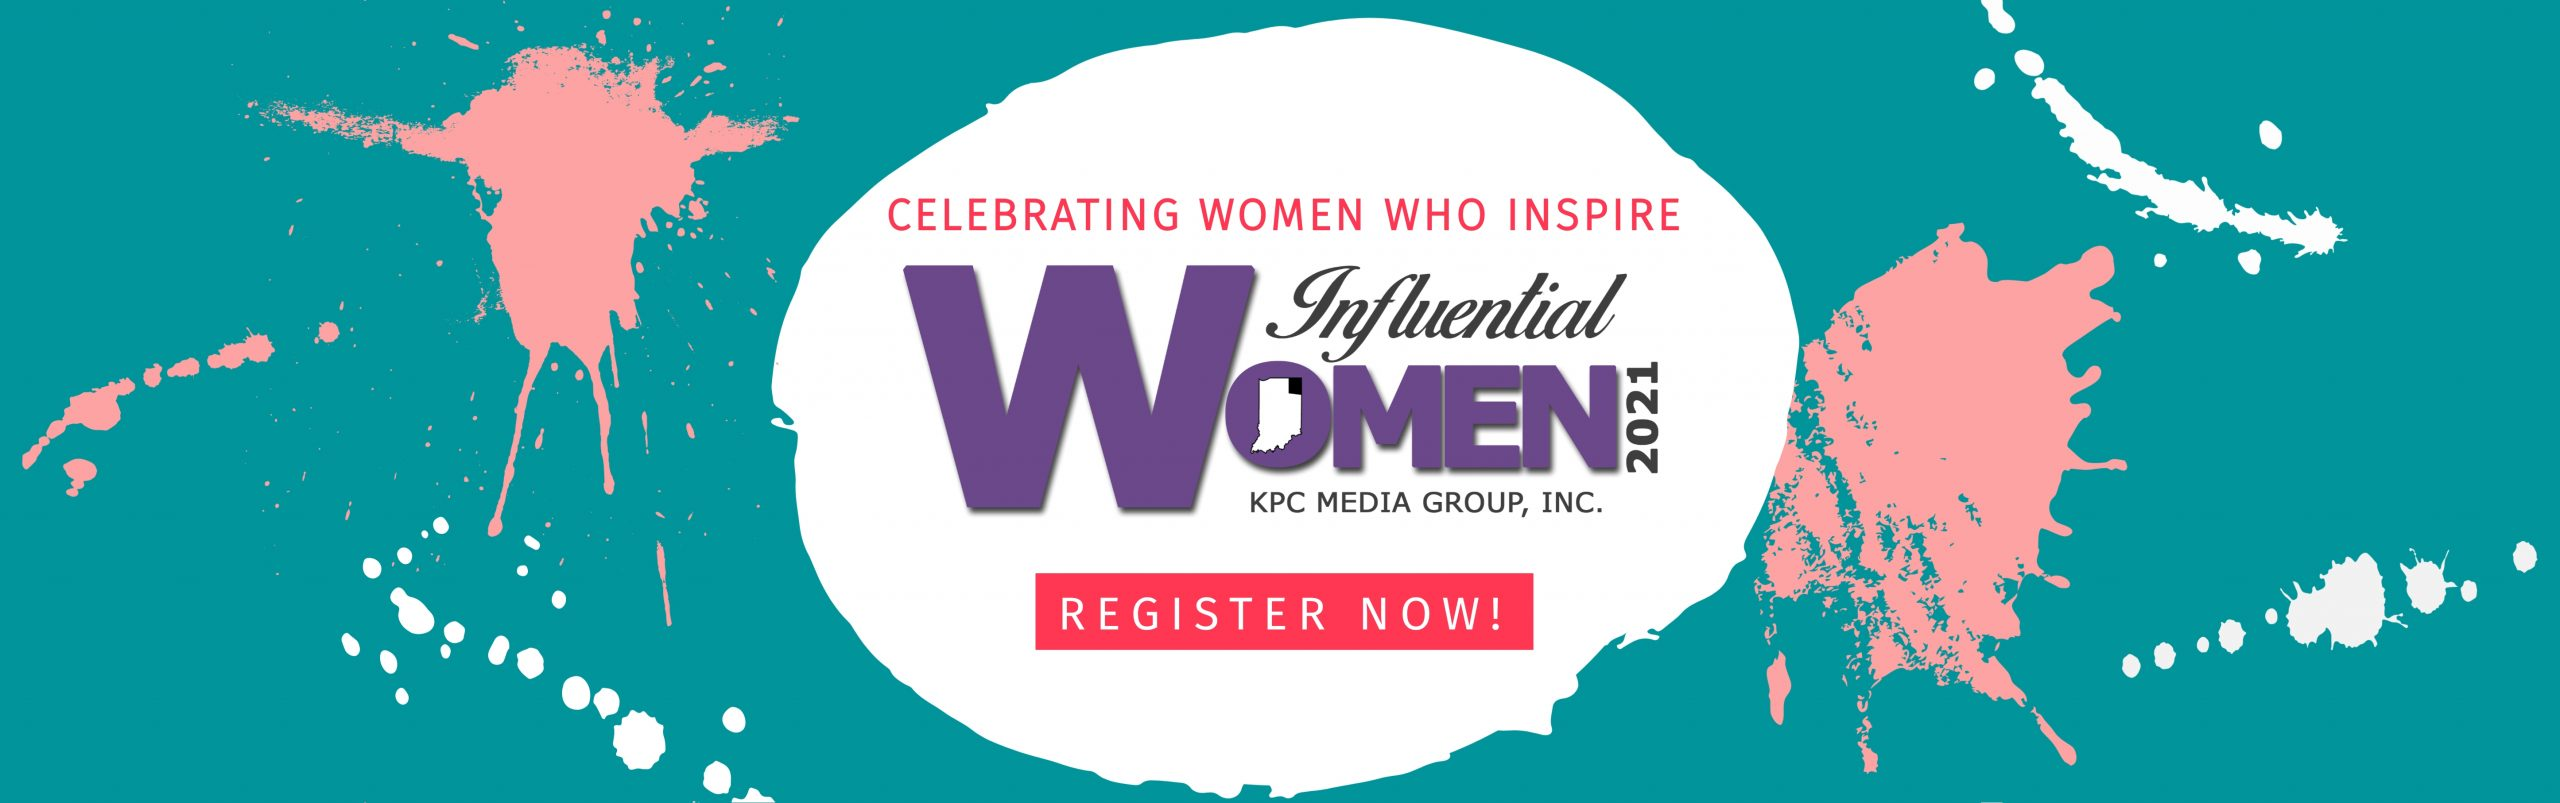 influential-women-landing-page